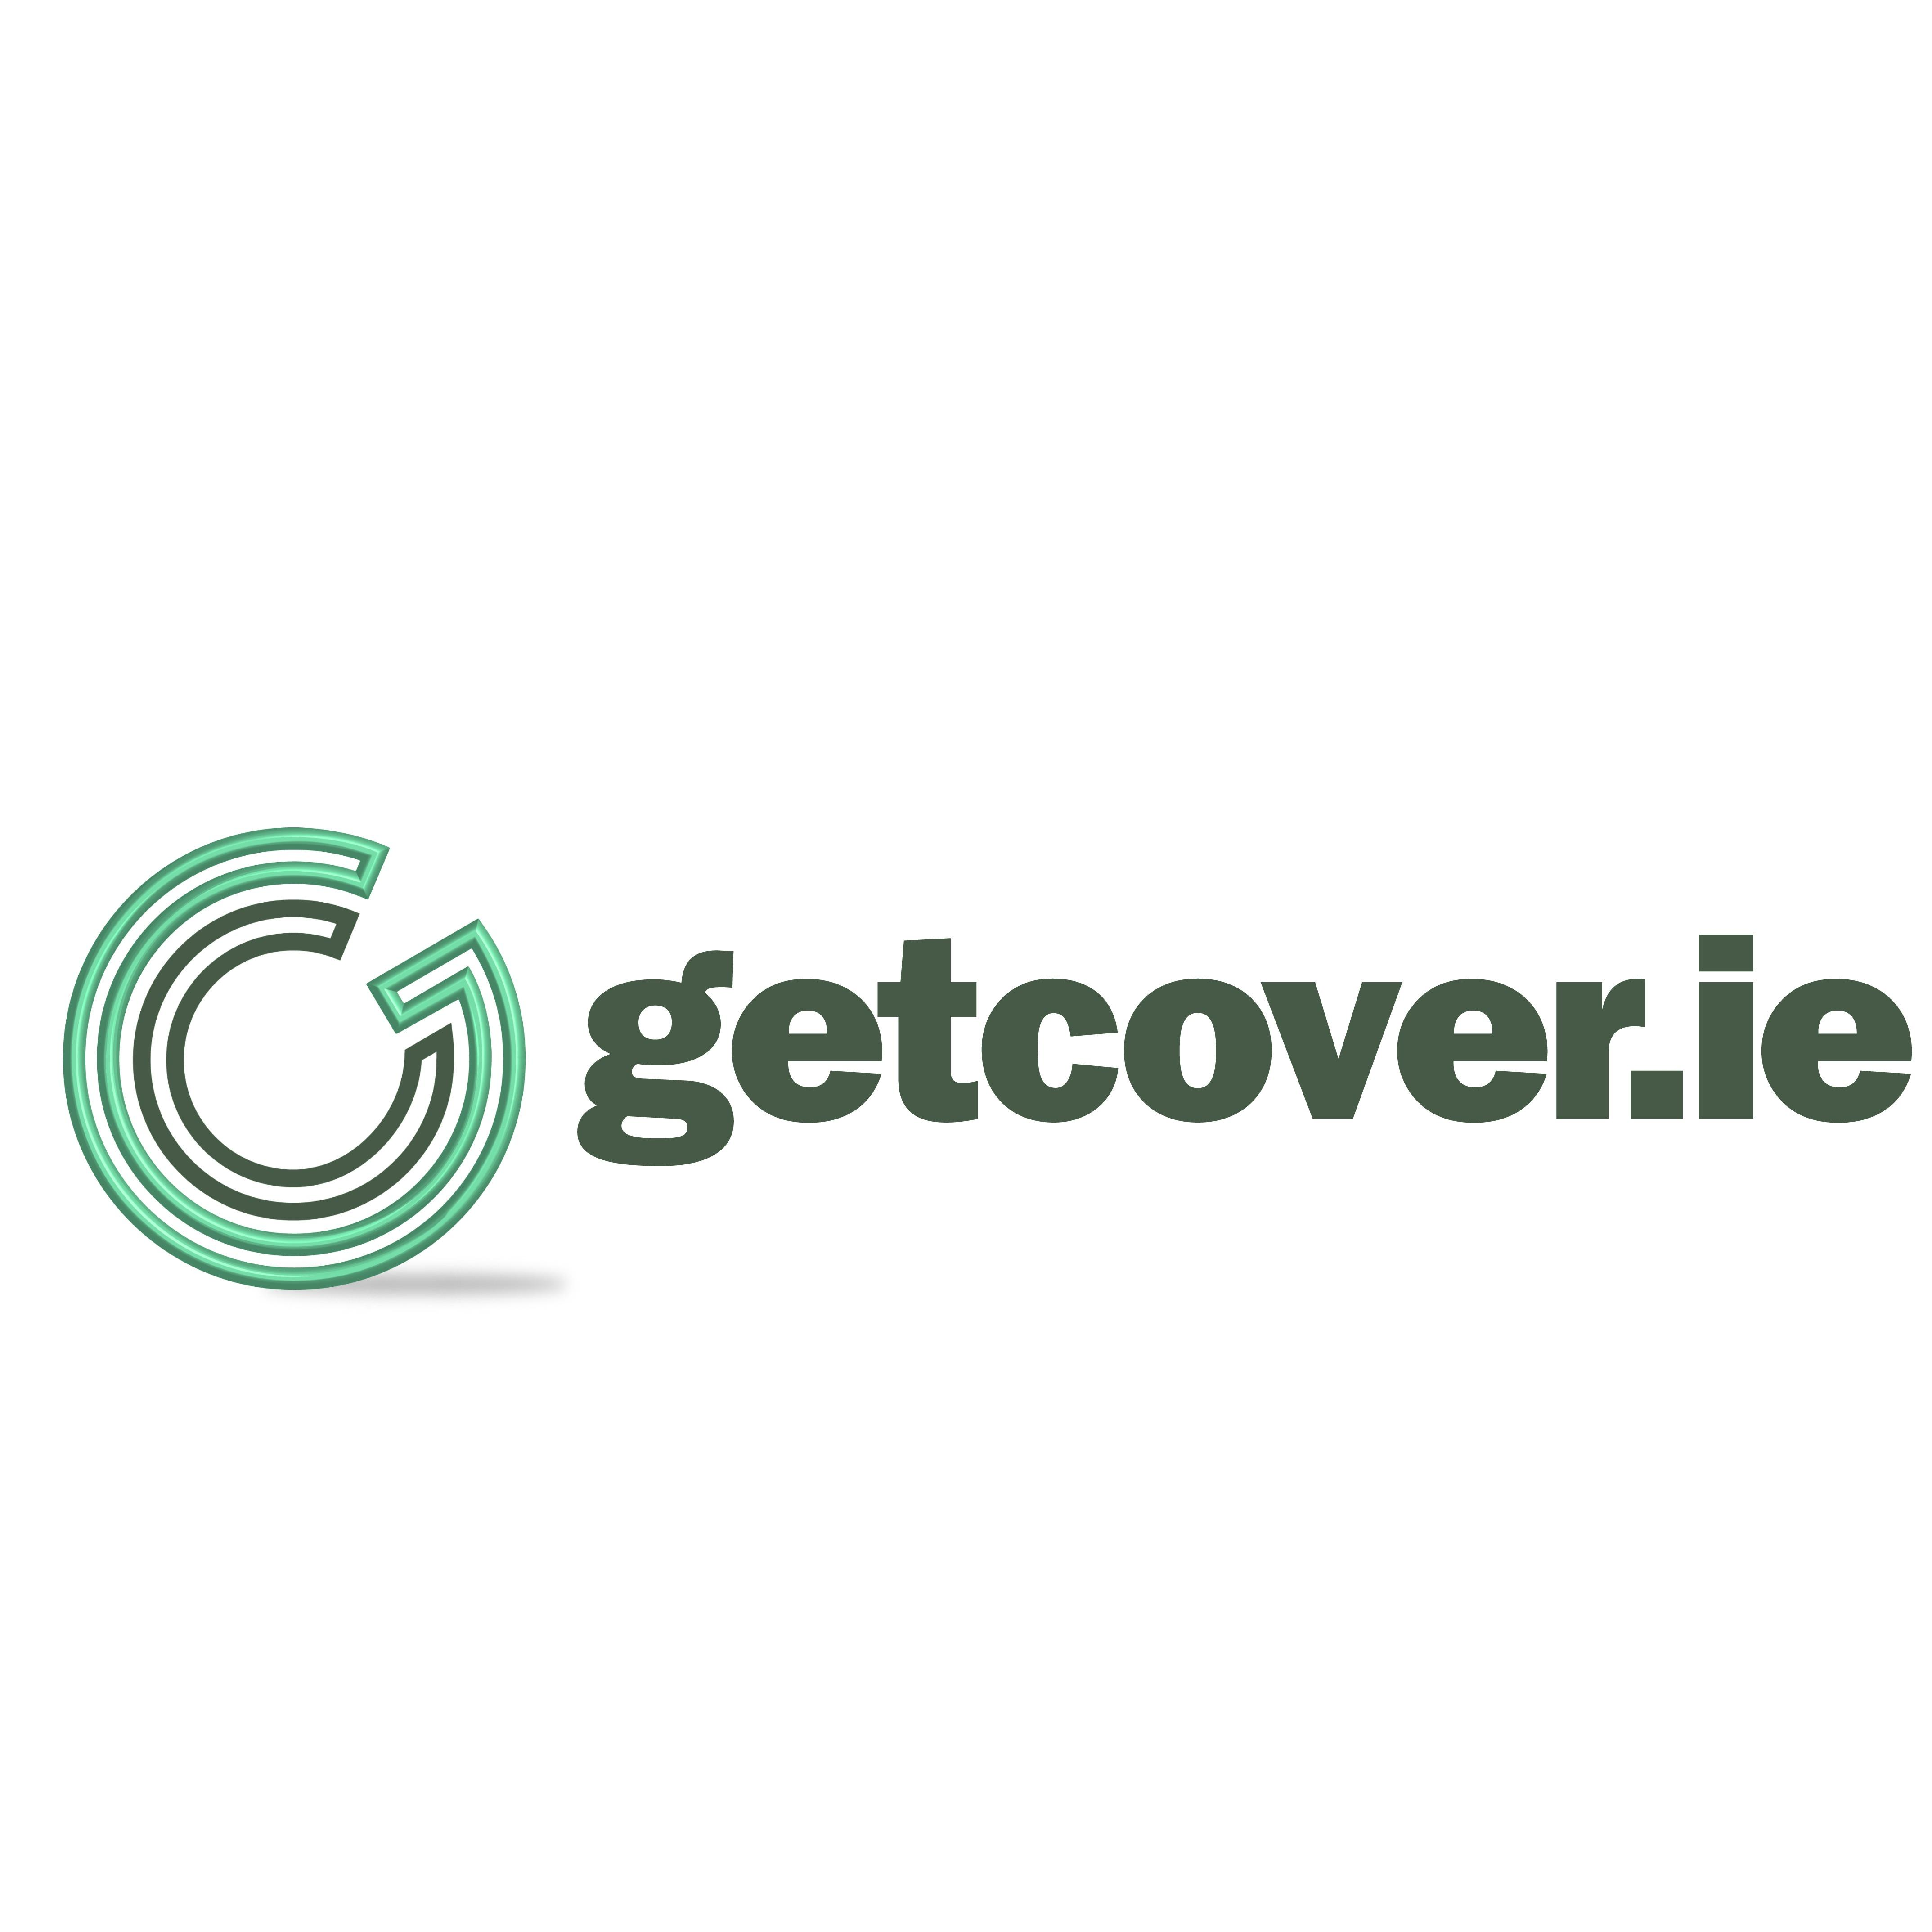 Getcover.ie